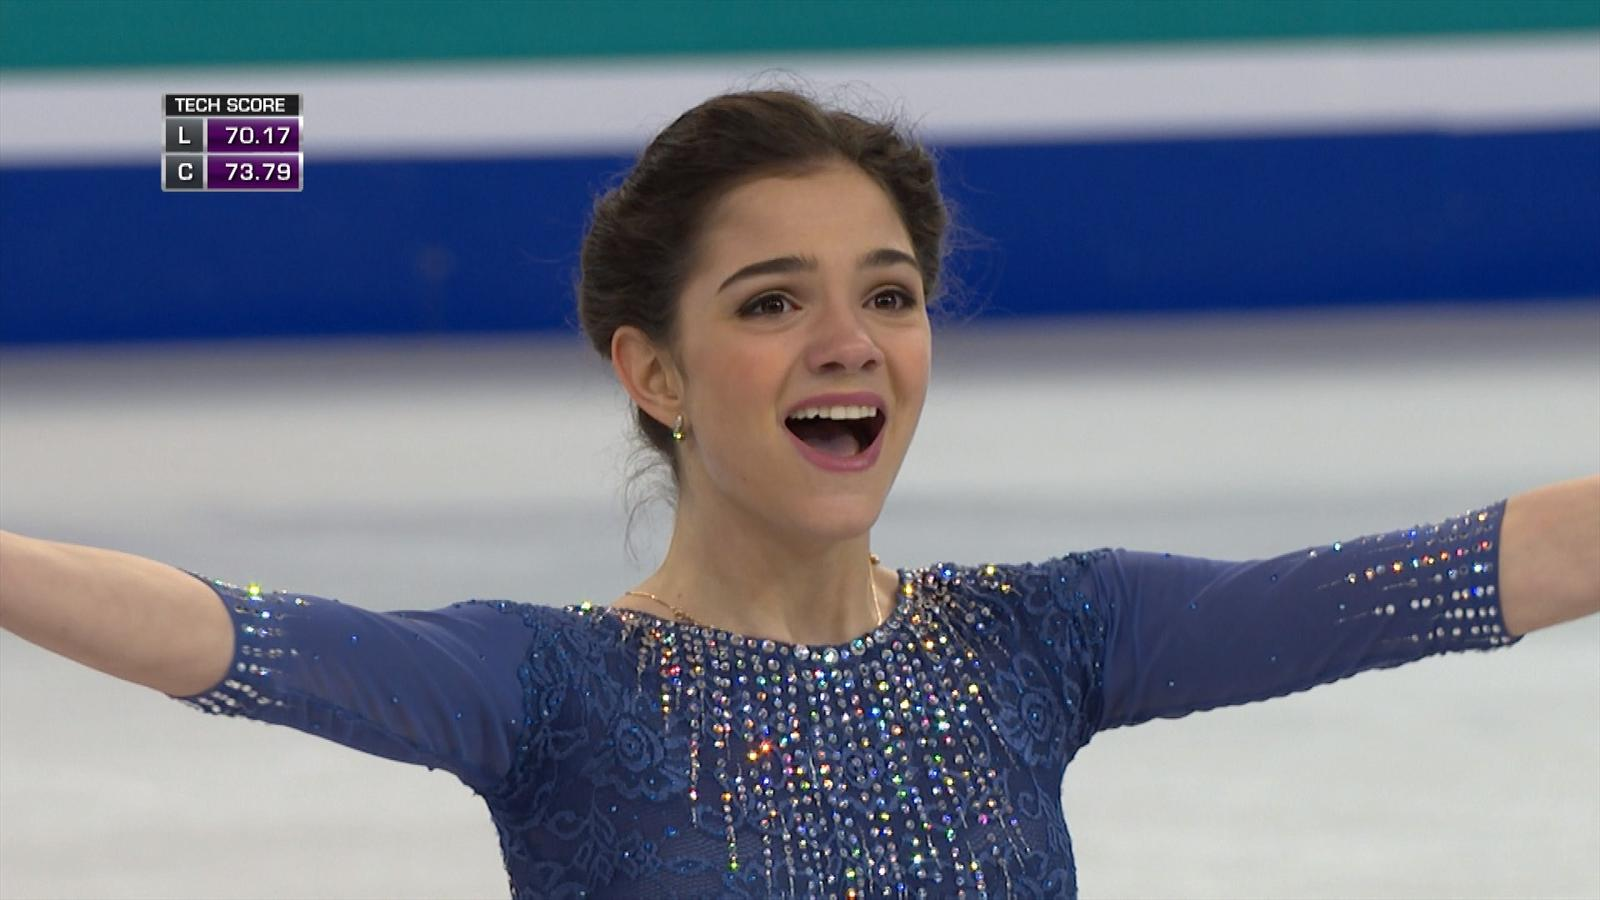 evgenia medvedeva  16  wins title  sets record points